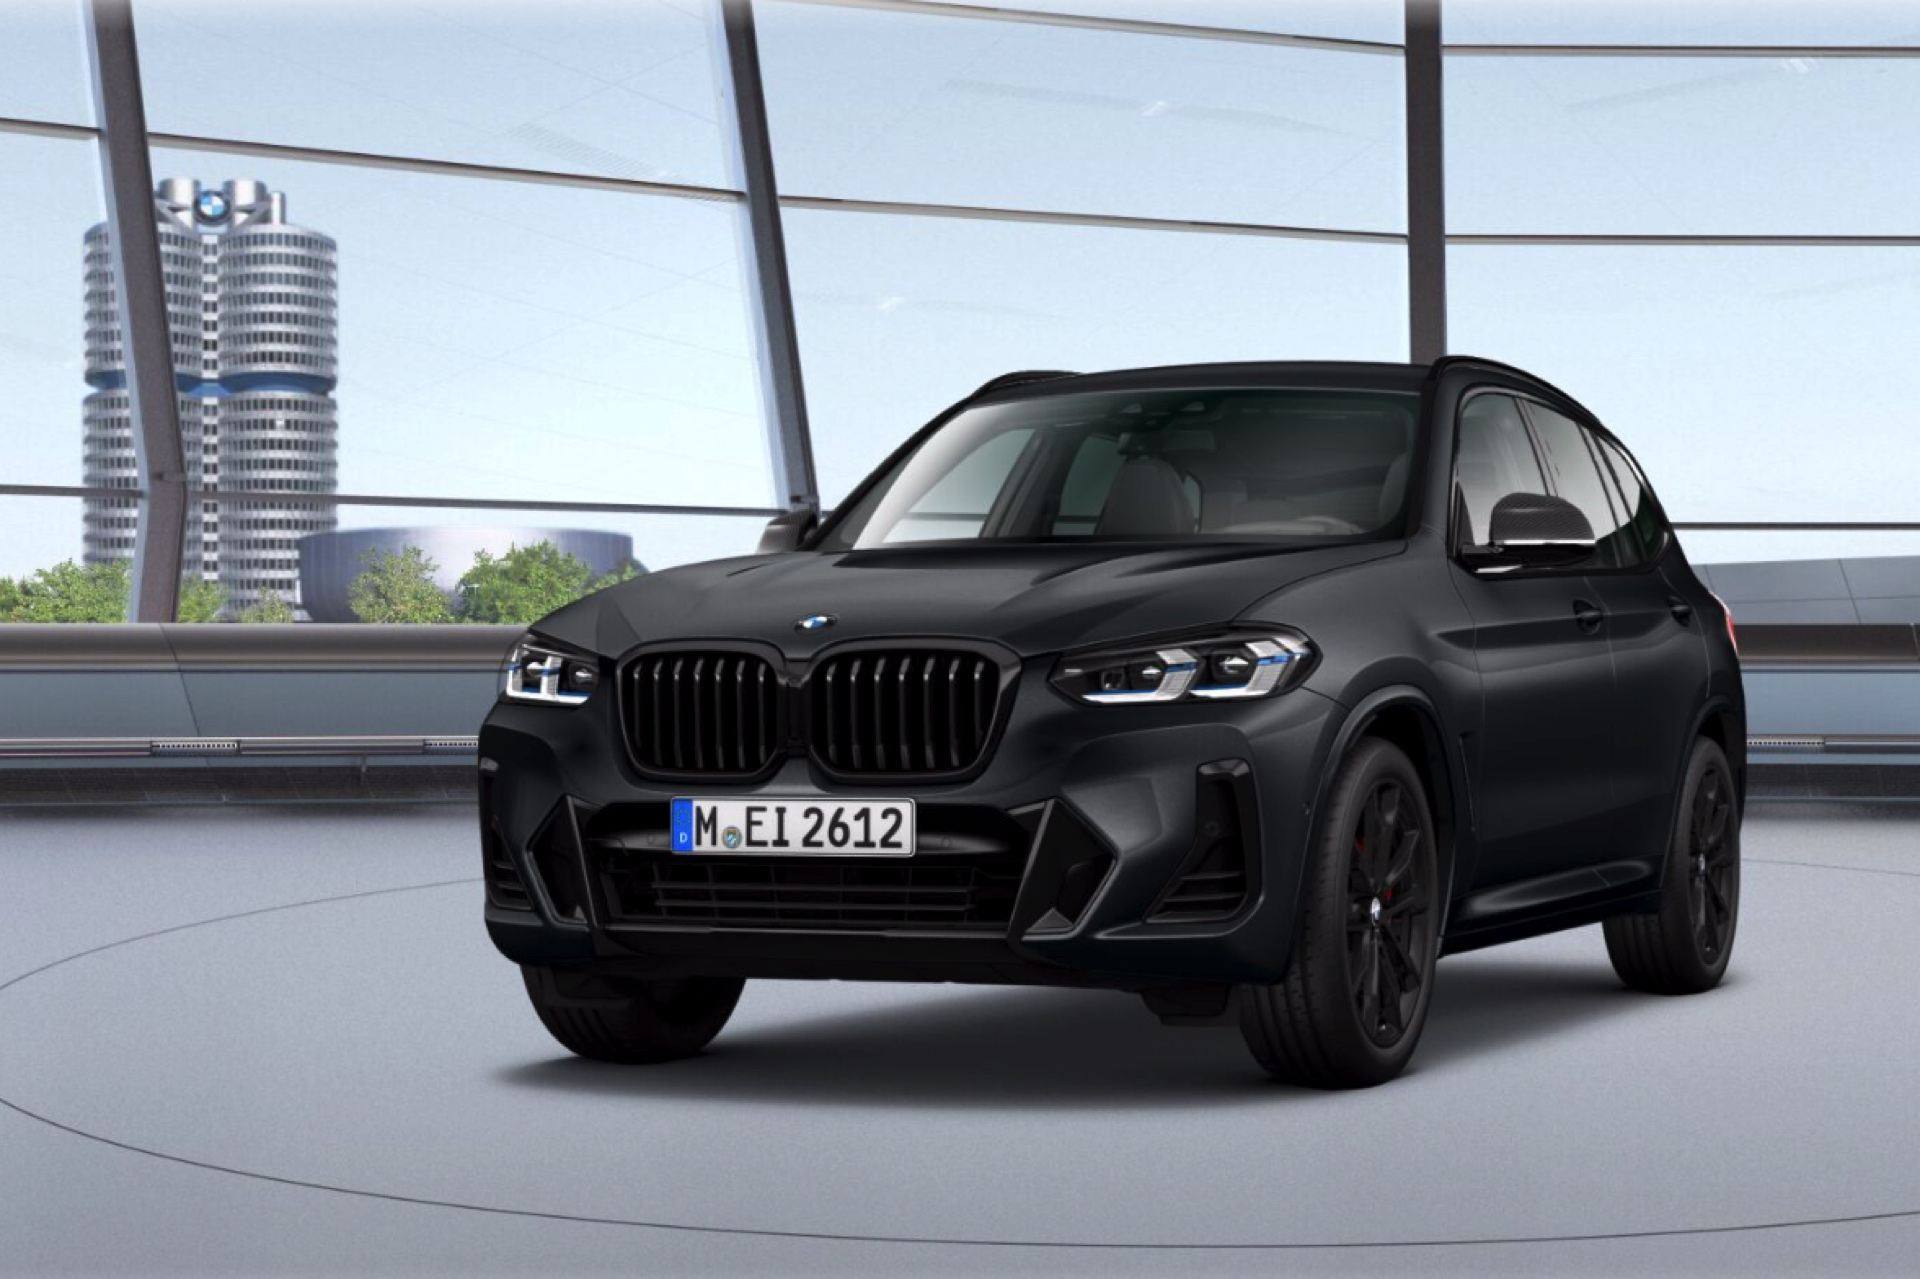 2021 BMW X3 Facelift: First pictures of the M Sport Edition